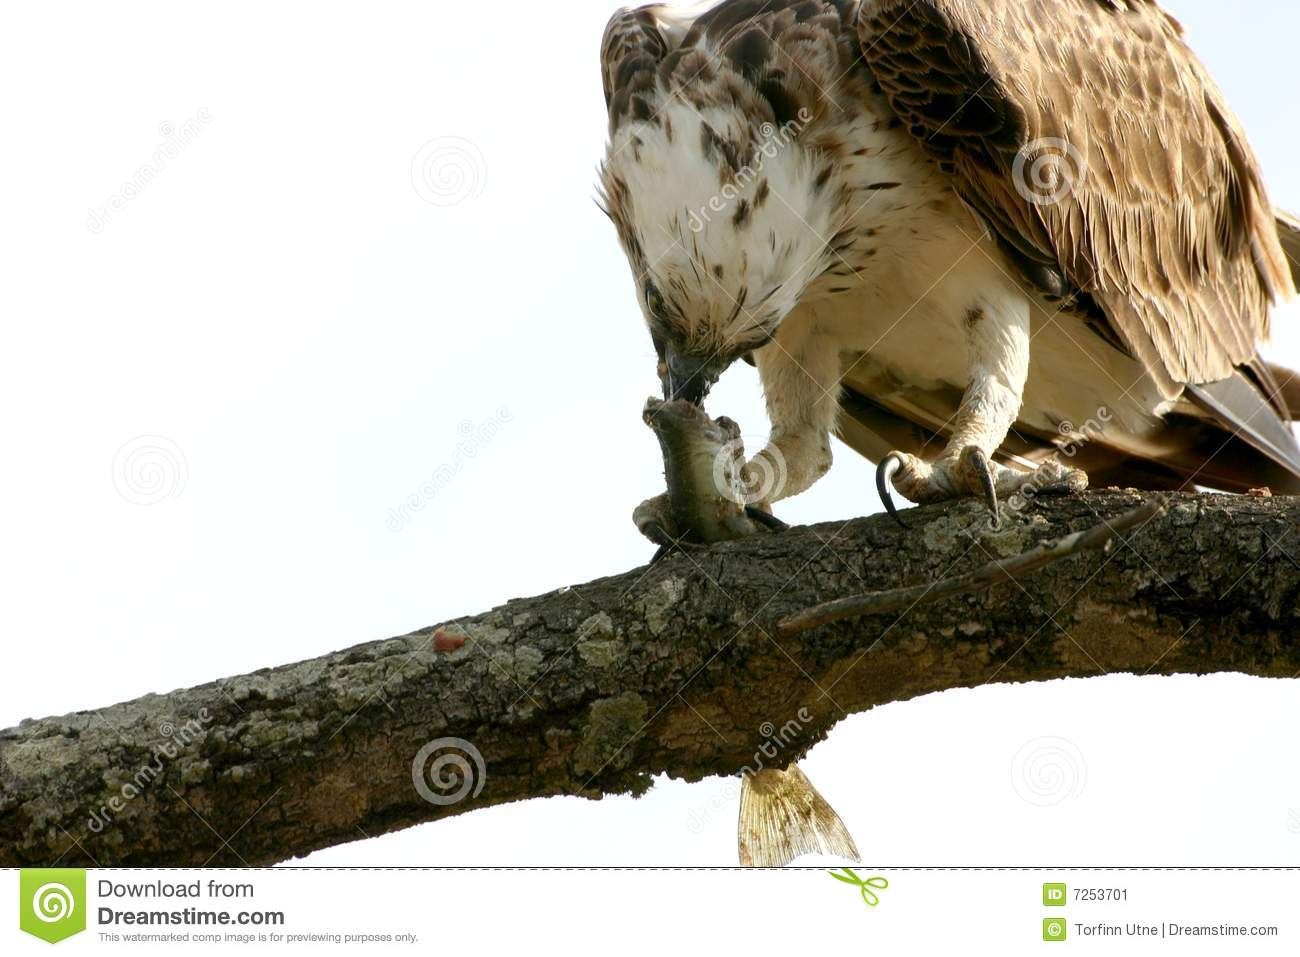 Osprey eating fish stock image image 7253701 for Dreaming of eating fish